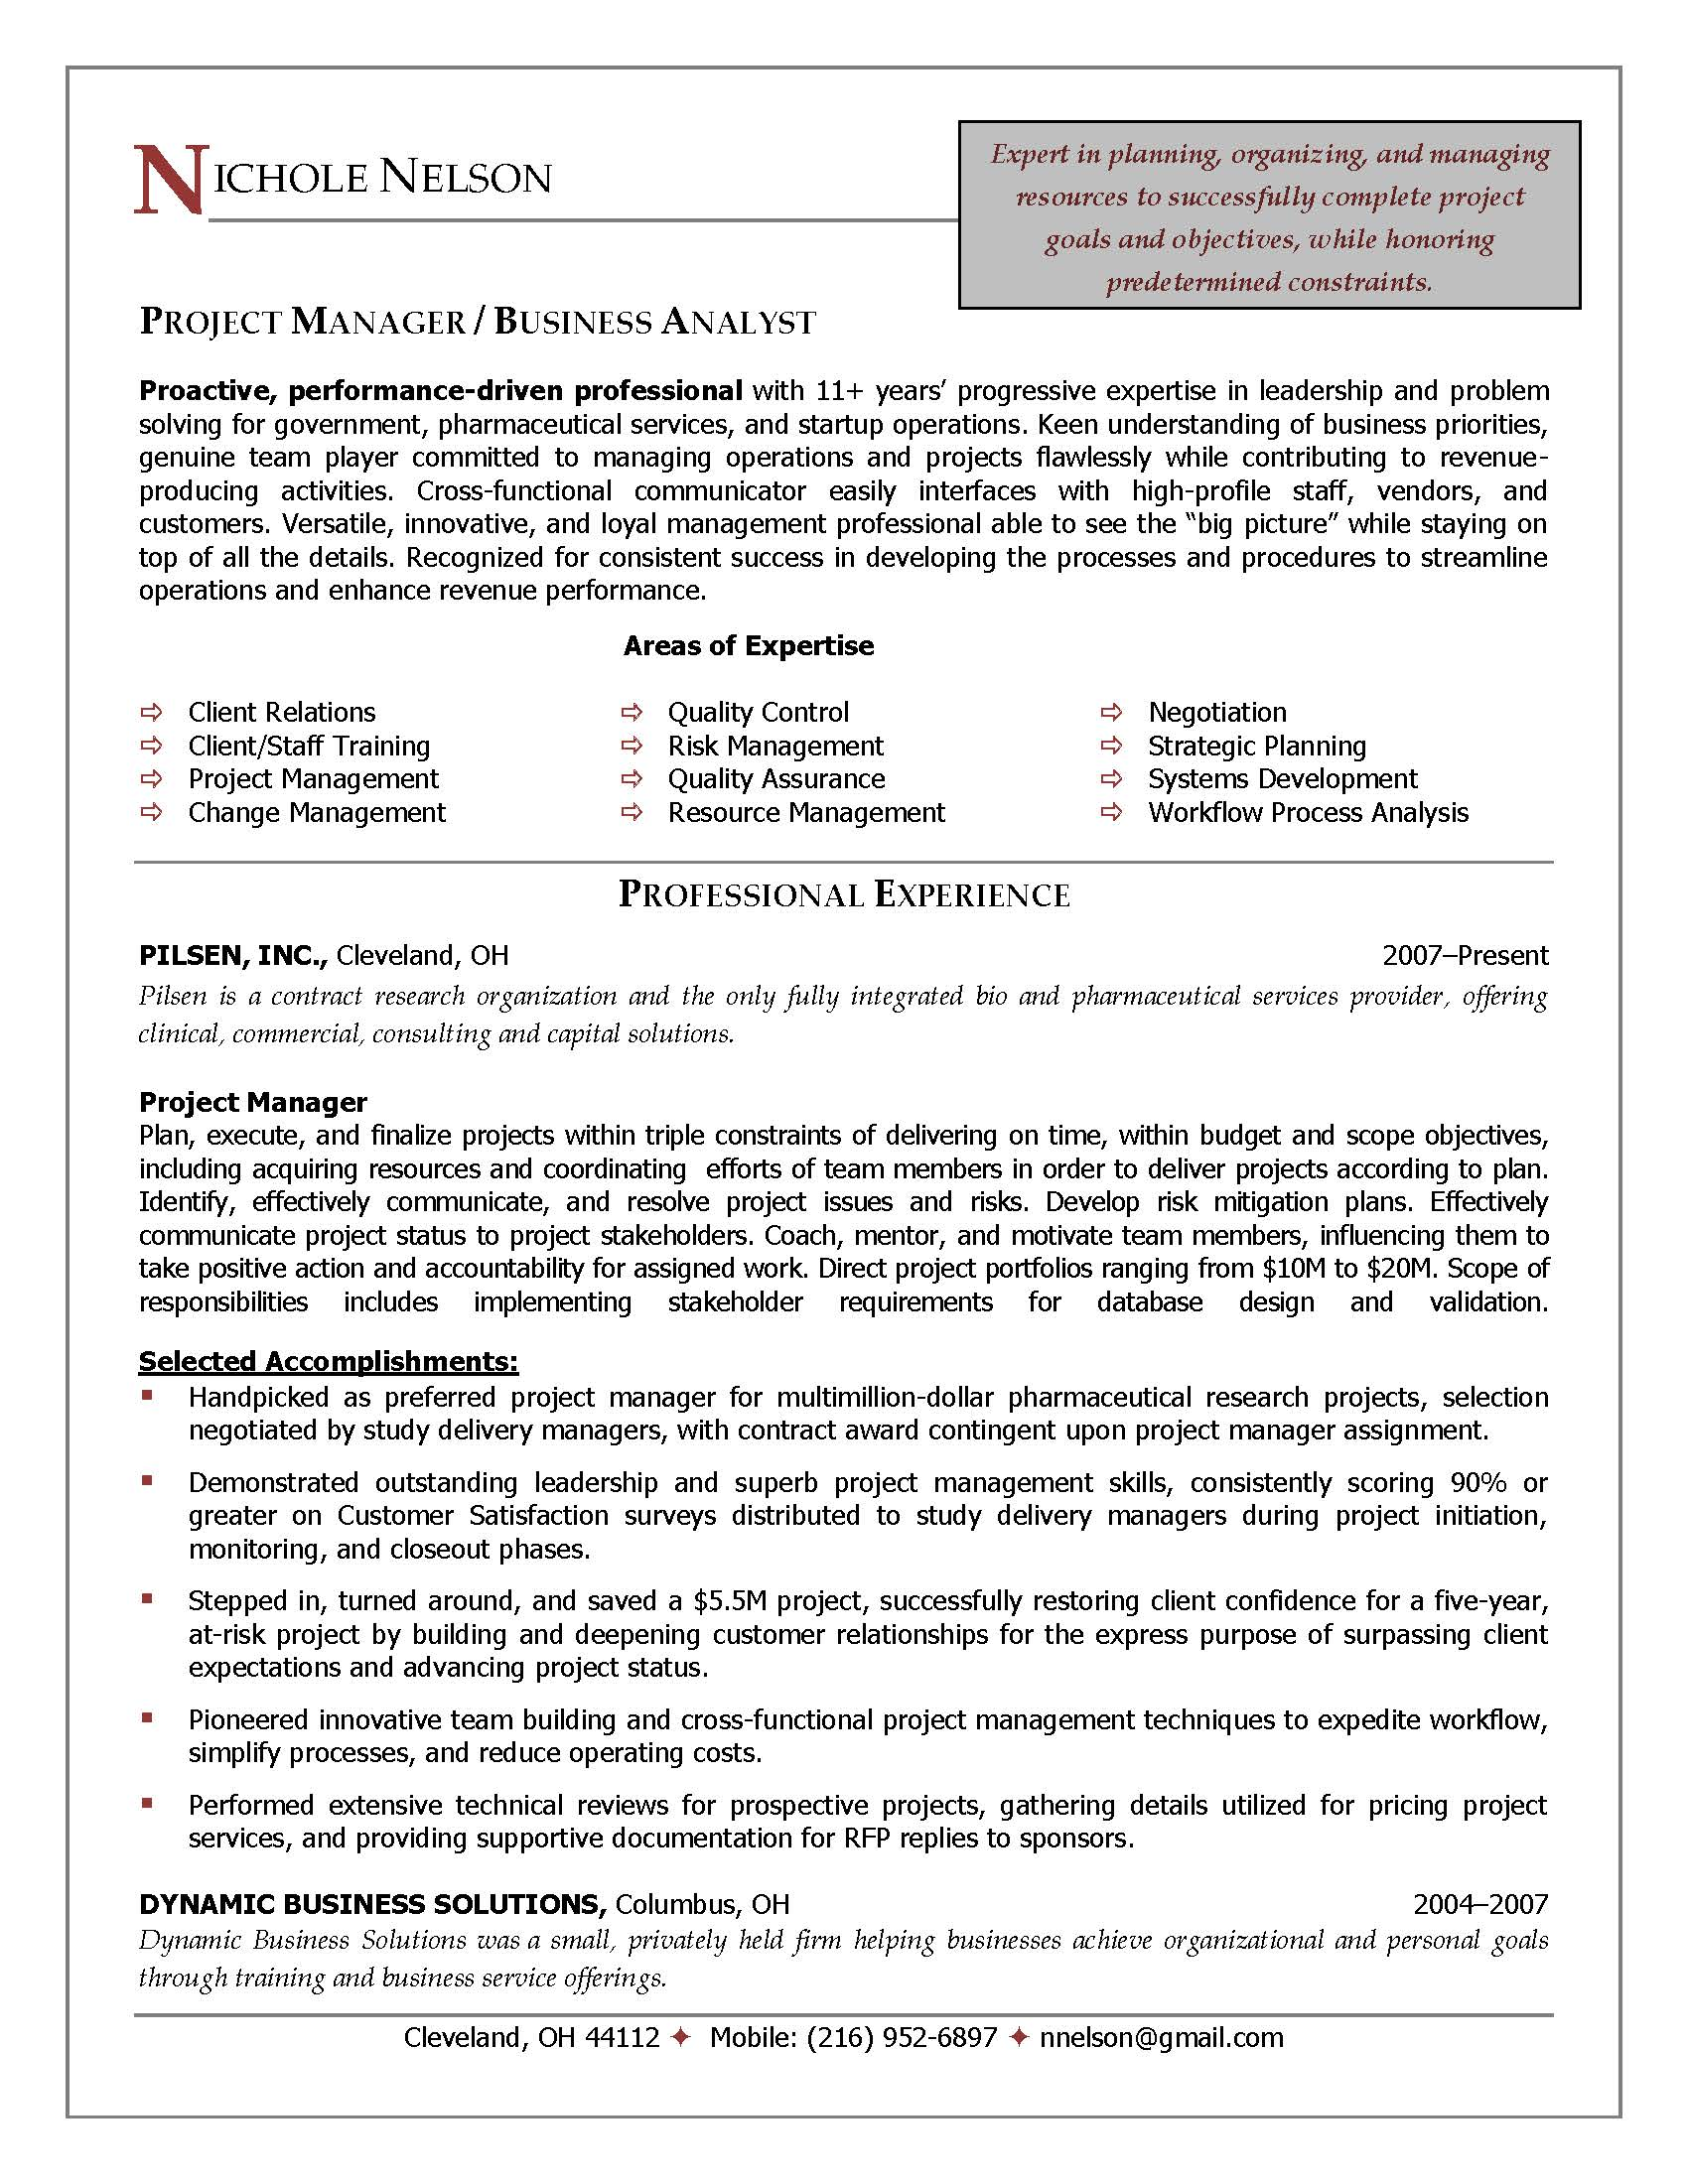 Project Manager Resume Sample Provided By Elite Writing Services